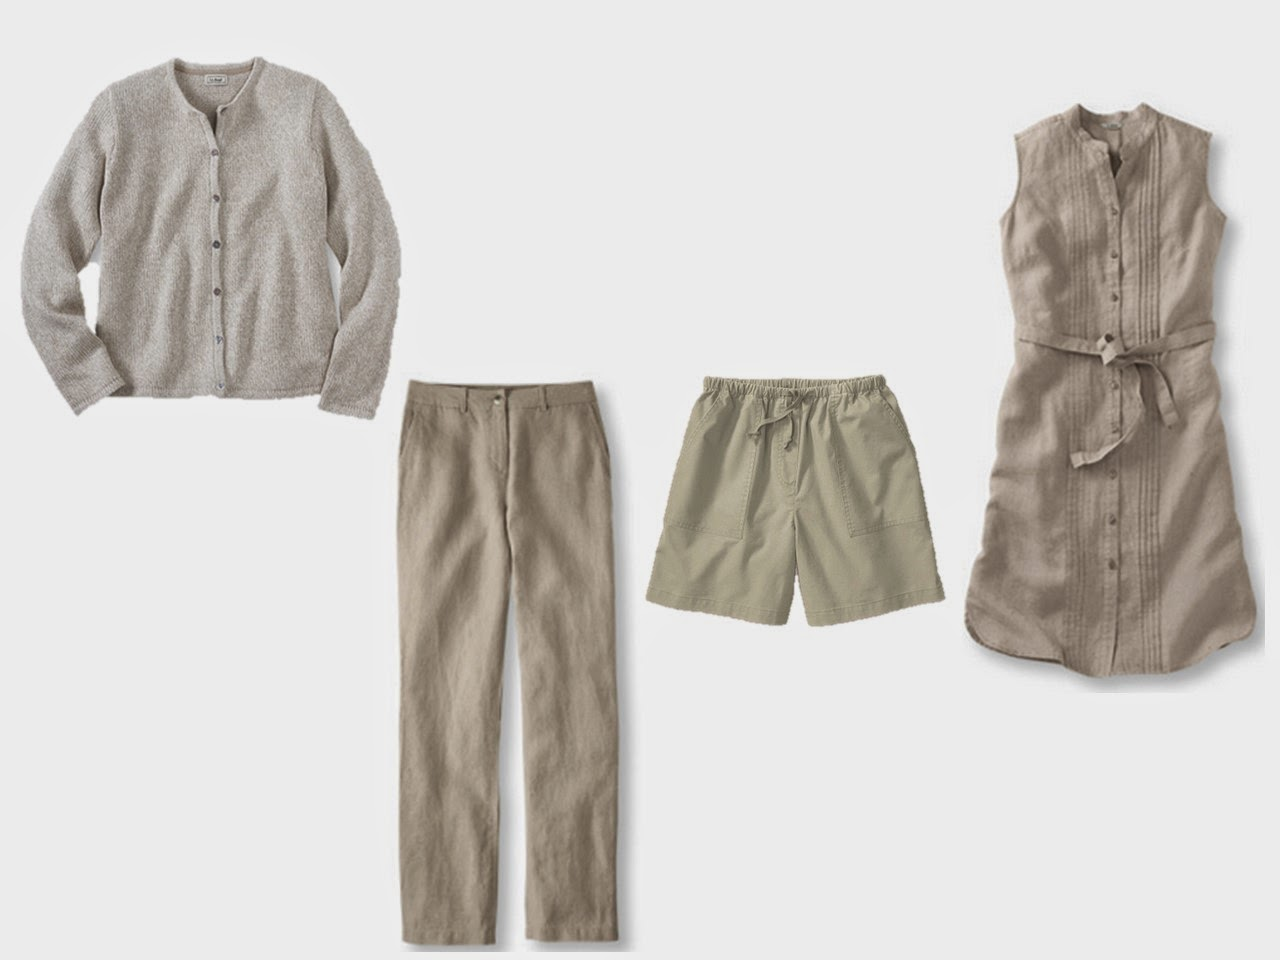 beige core of four wardrobe of cardigan dress pants and shorts